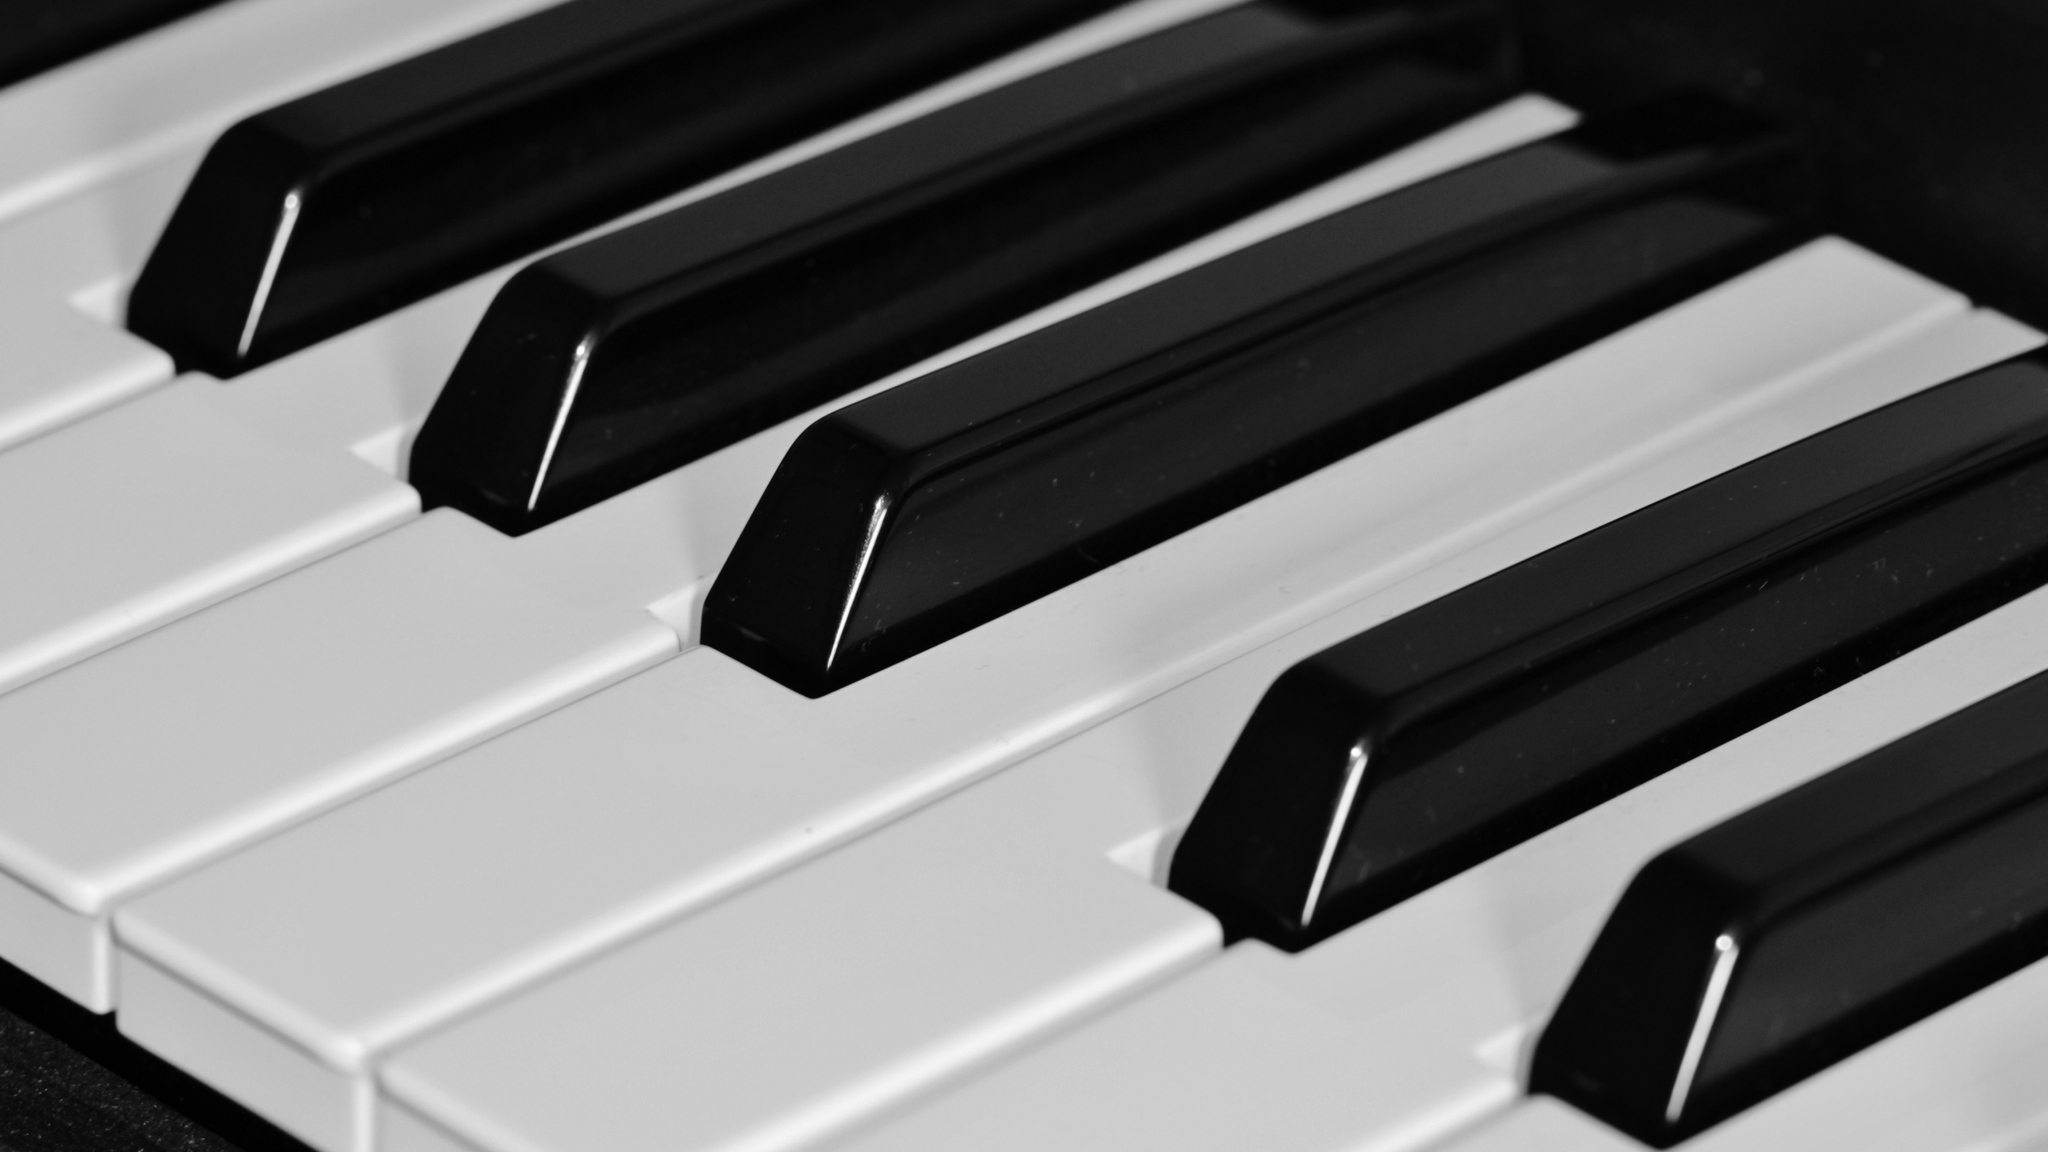 2048x1152 Piano Keys 2048x1152 Resolution Hd 4k Wallpapers Images Backgrounds Photos And Pictures